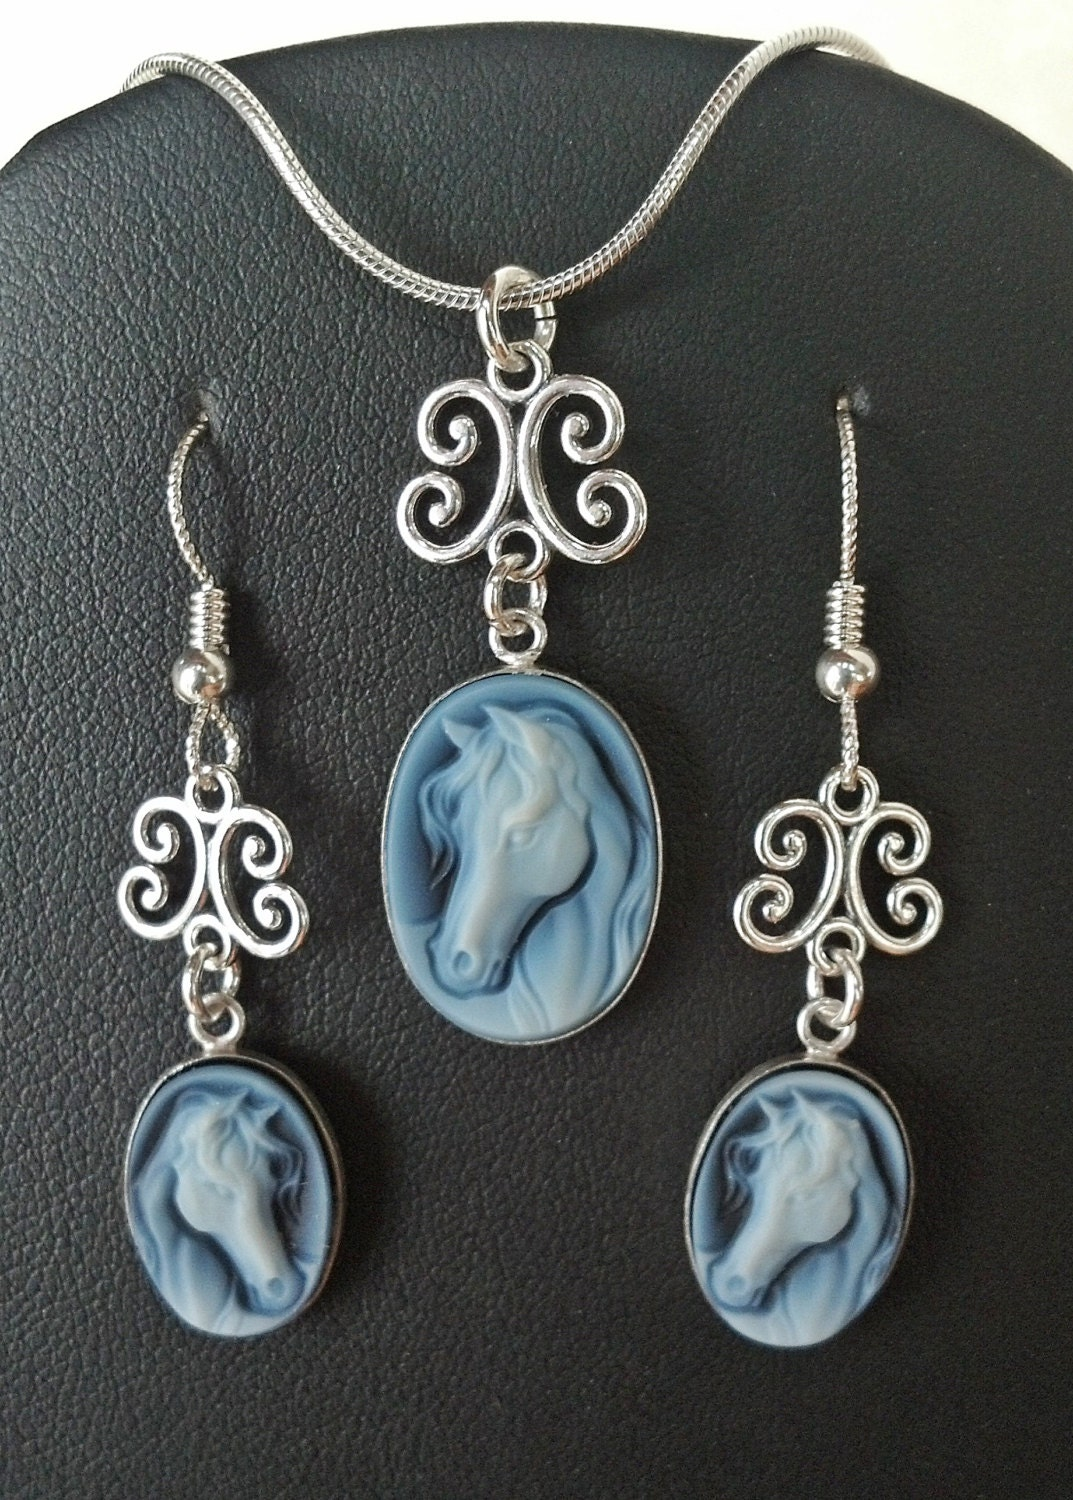 Black Agate Horse Cameo Jewelry Cameo Sterling Silver Jewelry Set - FireHorseArtJewelry